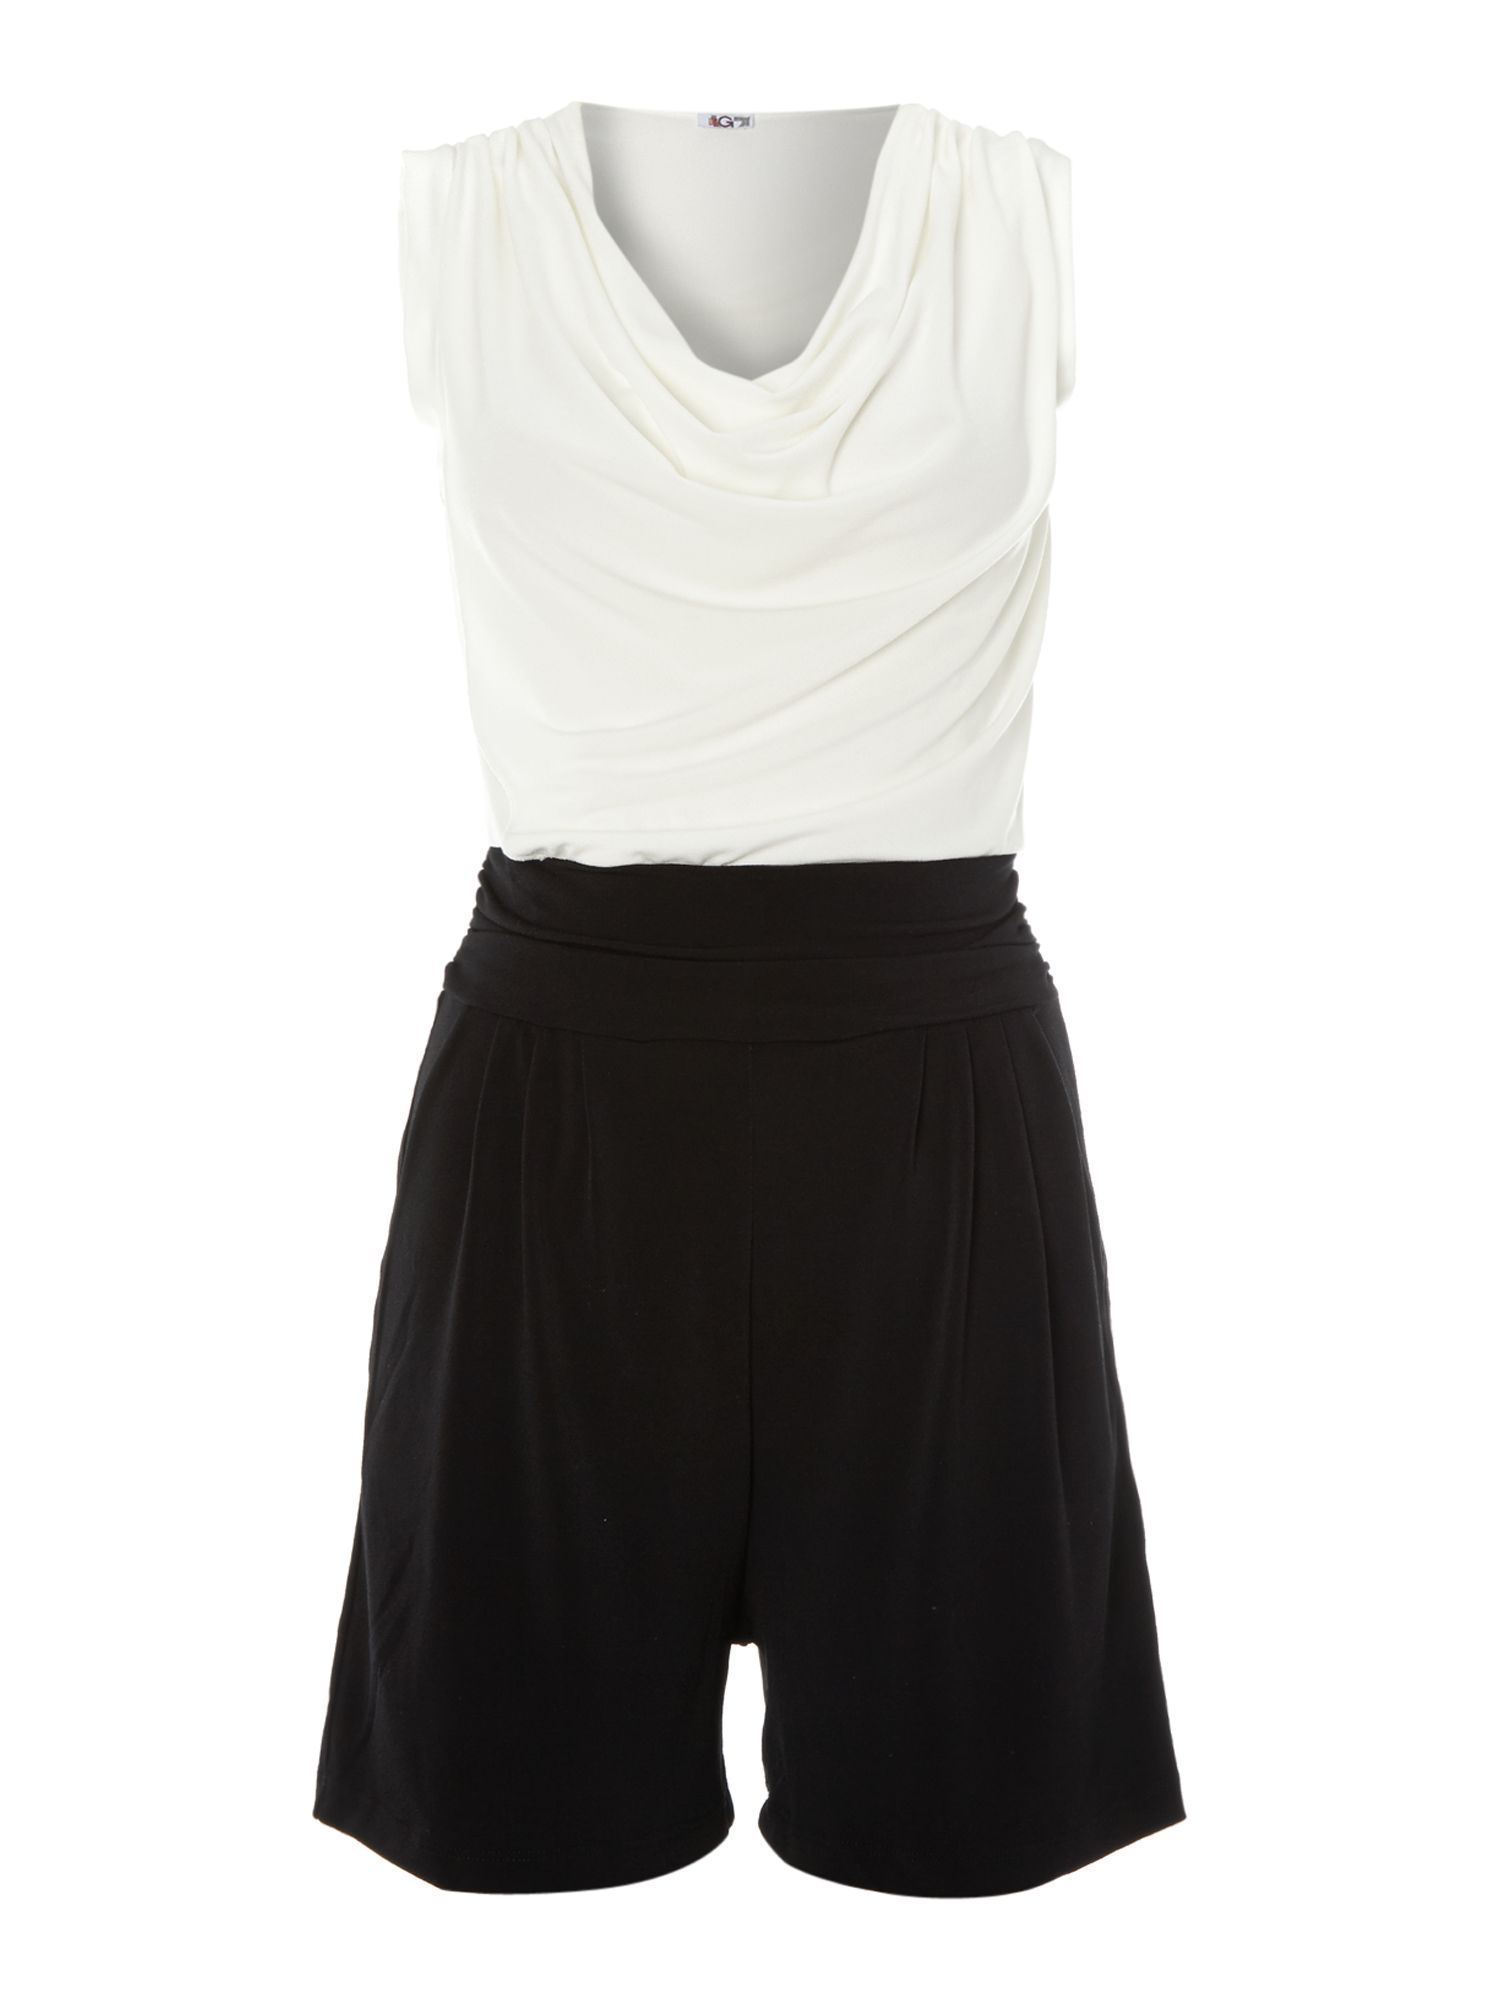 Cowl neck two tone sleeveless playsuit